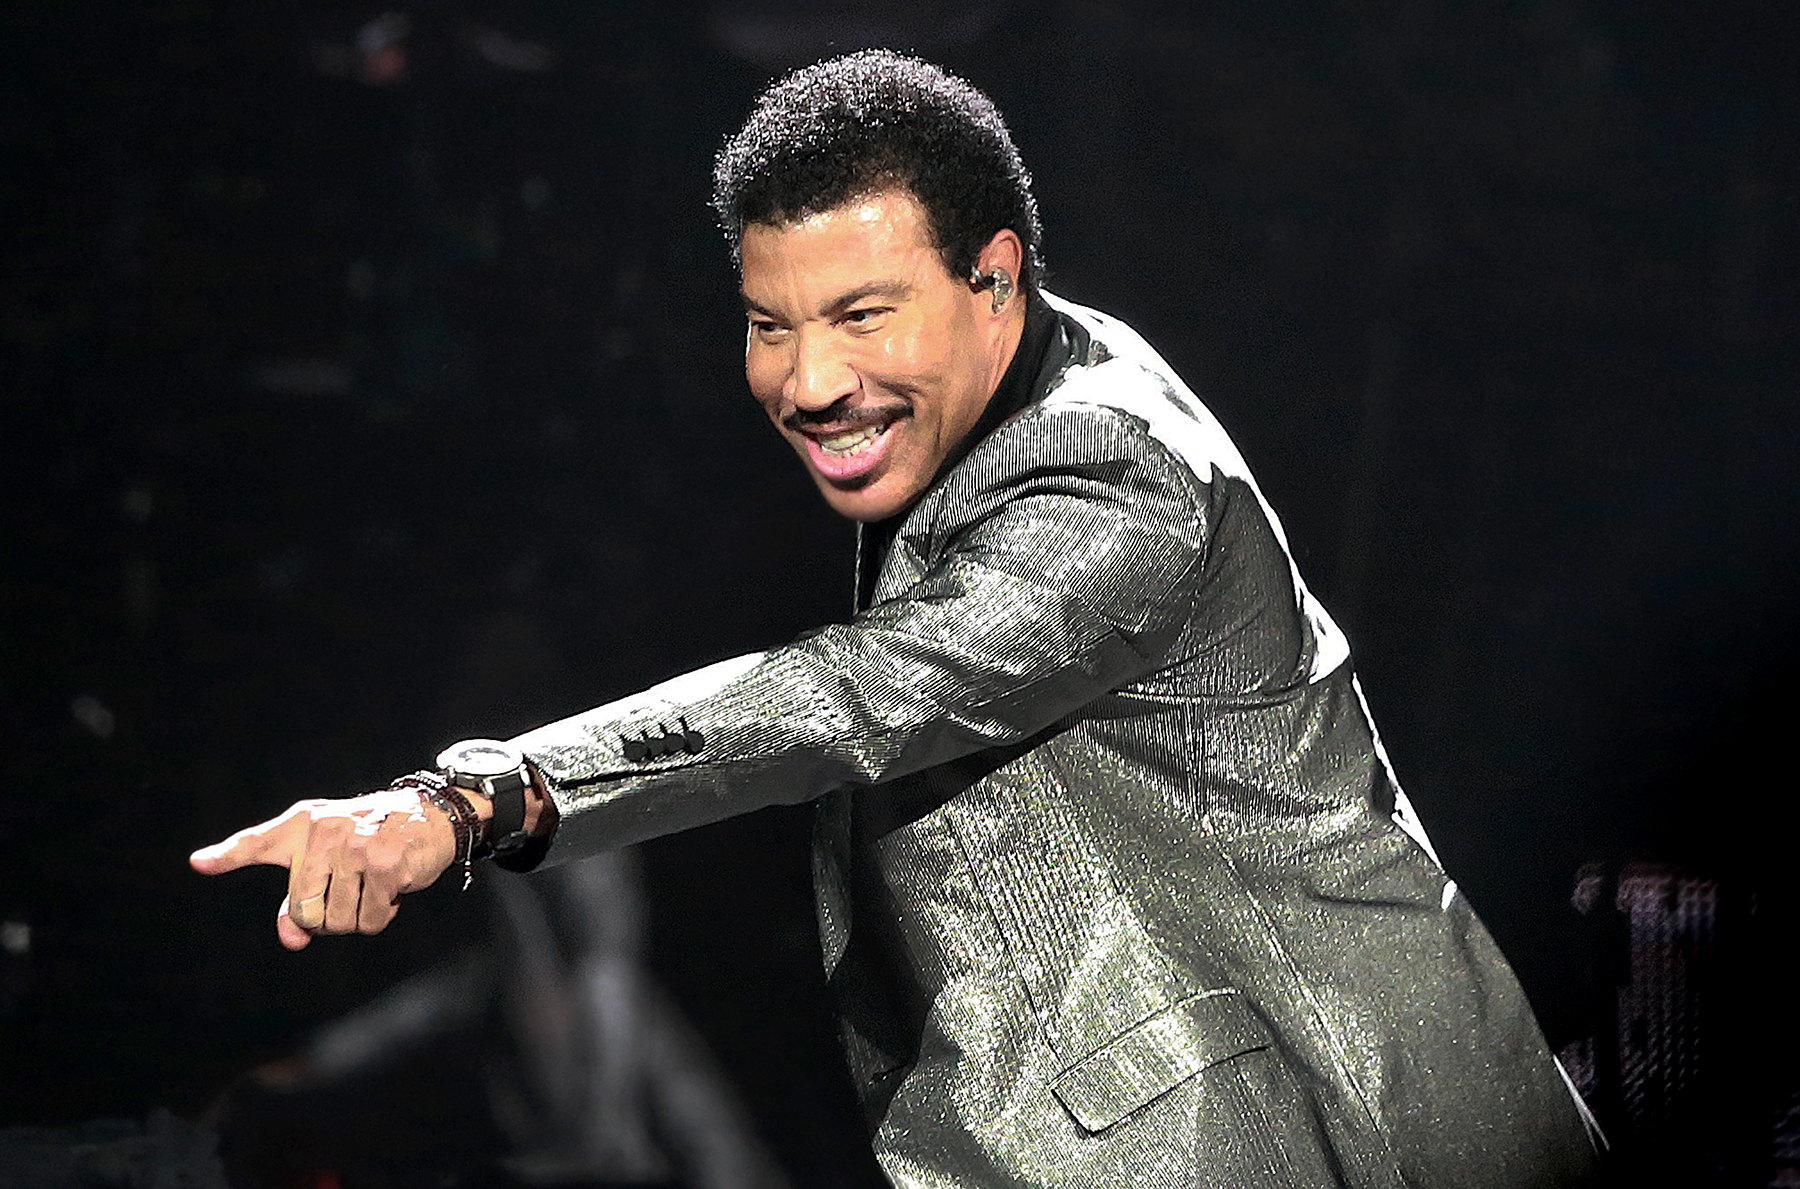 Lionel Richie performs at TD Garden in Boston on Aug. 22, 2017.